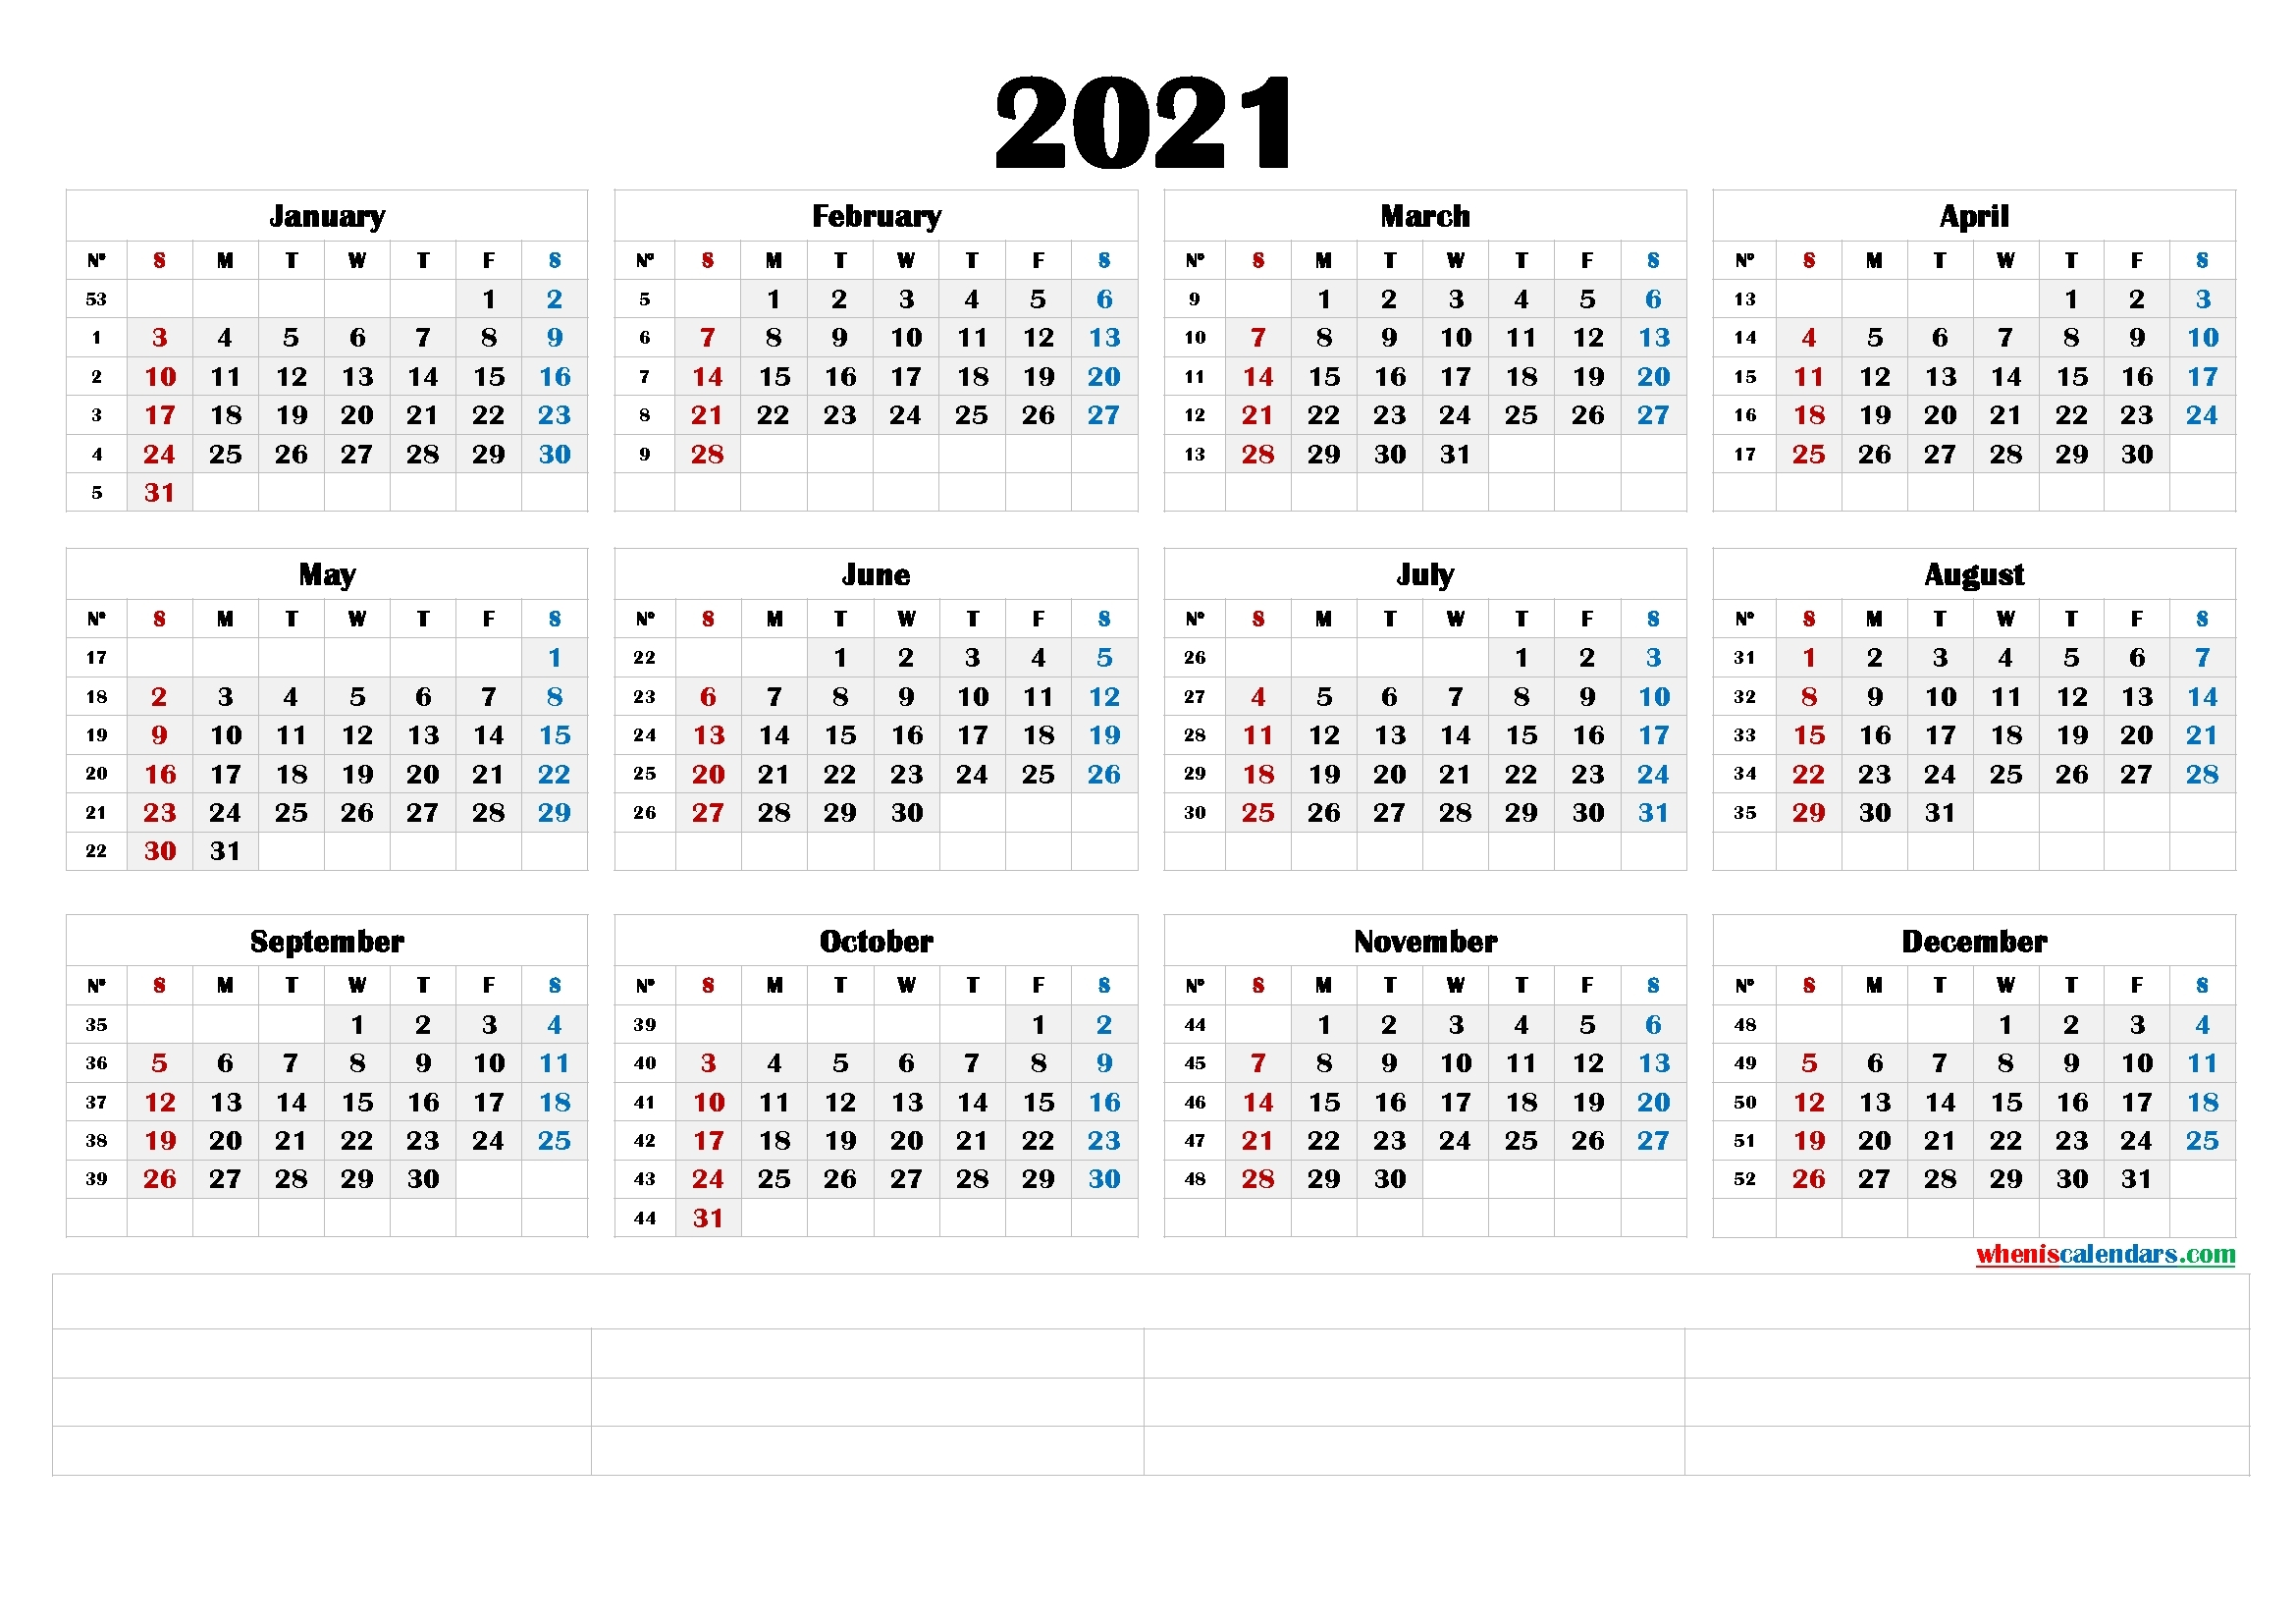 2021 Printable Yearly Calendar With Week Numbers (6 Templates)